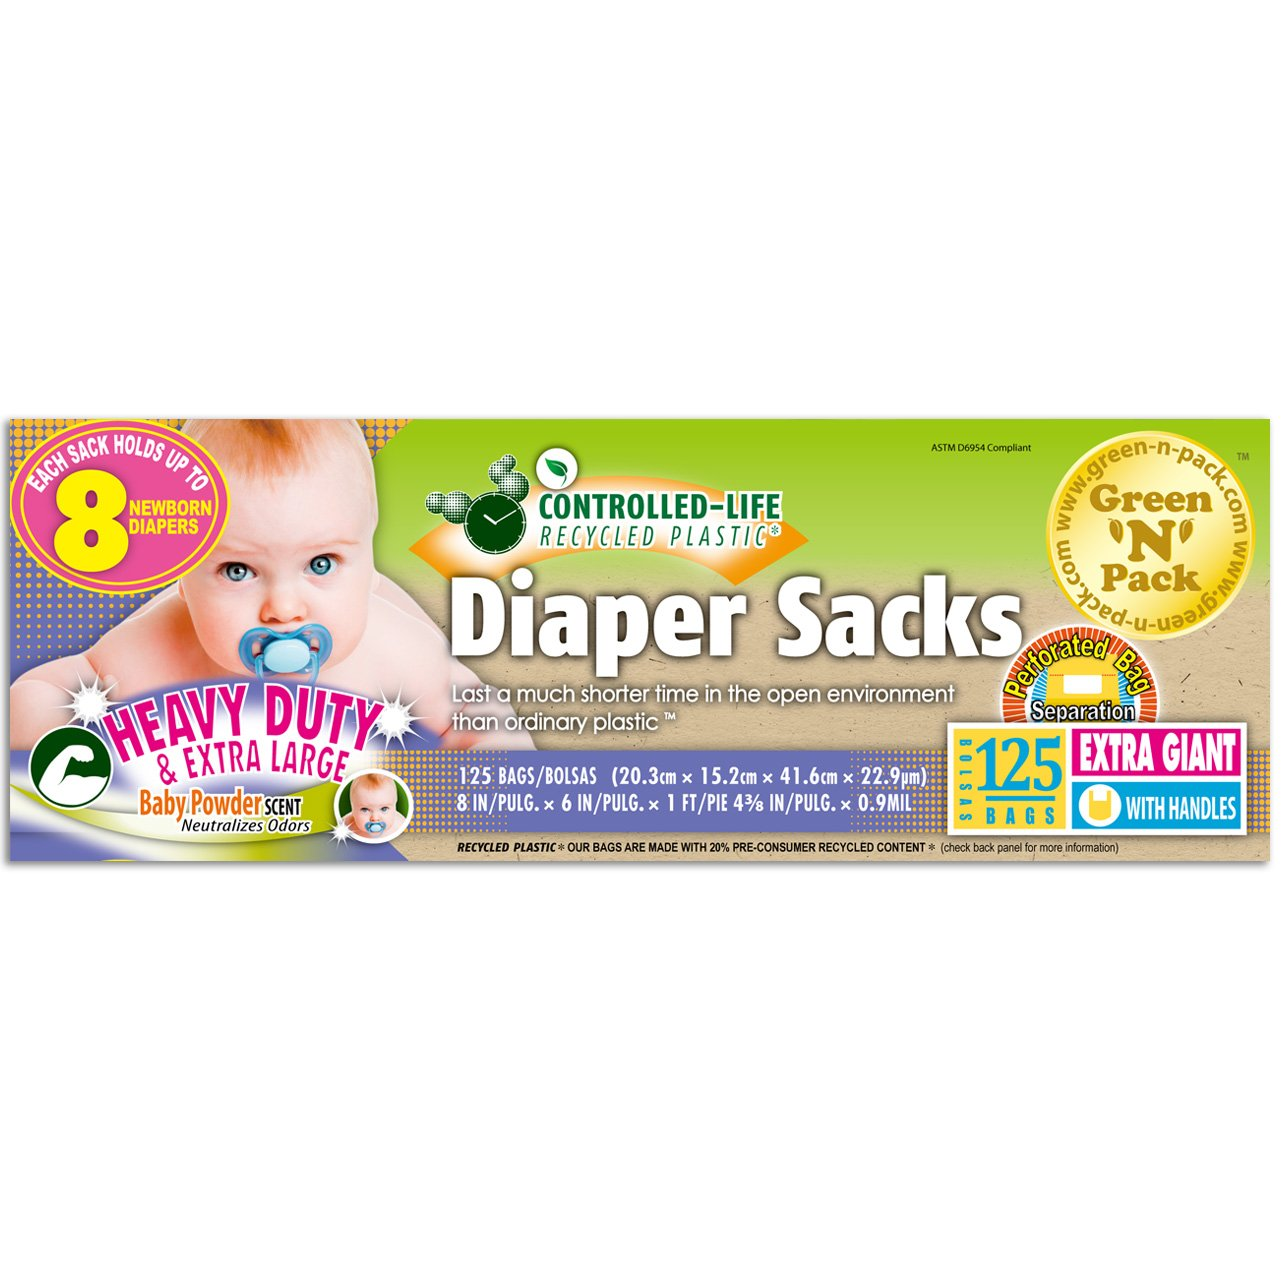 Green'N'Pack EasyTie Scented Baby Diaper Sacks, Extra Large, 125 Count